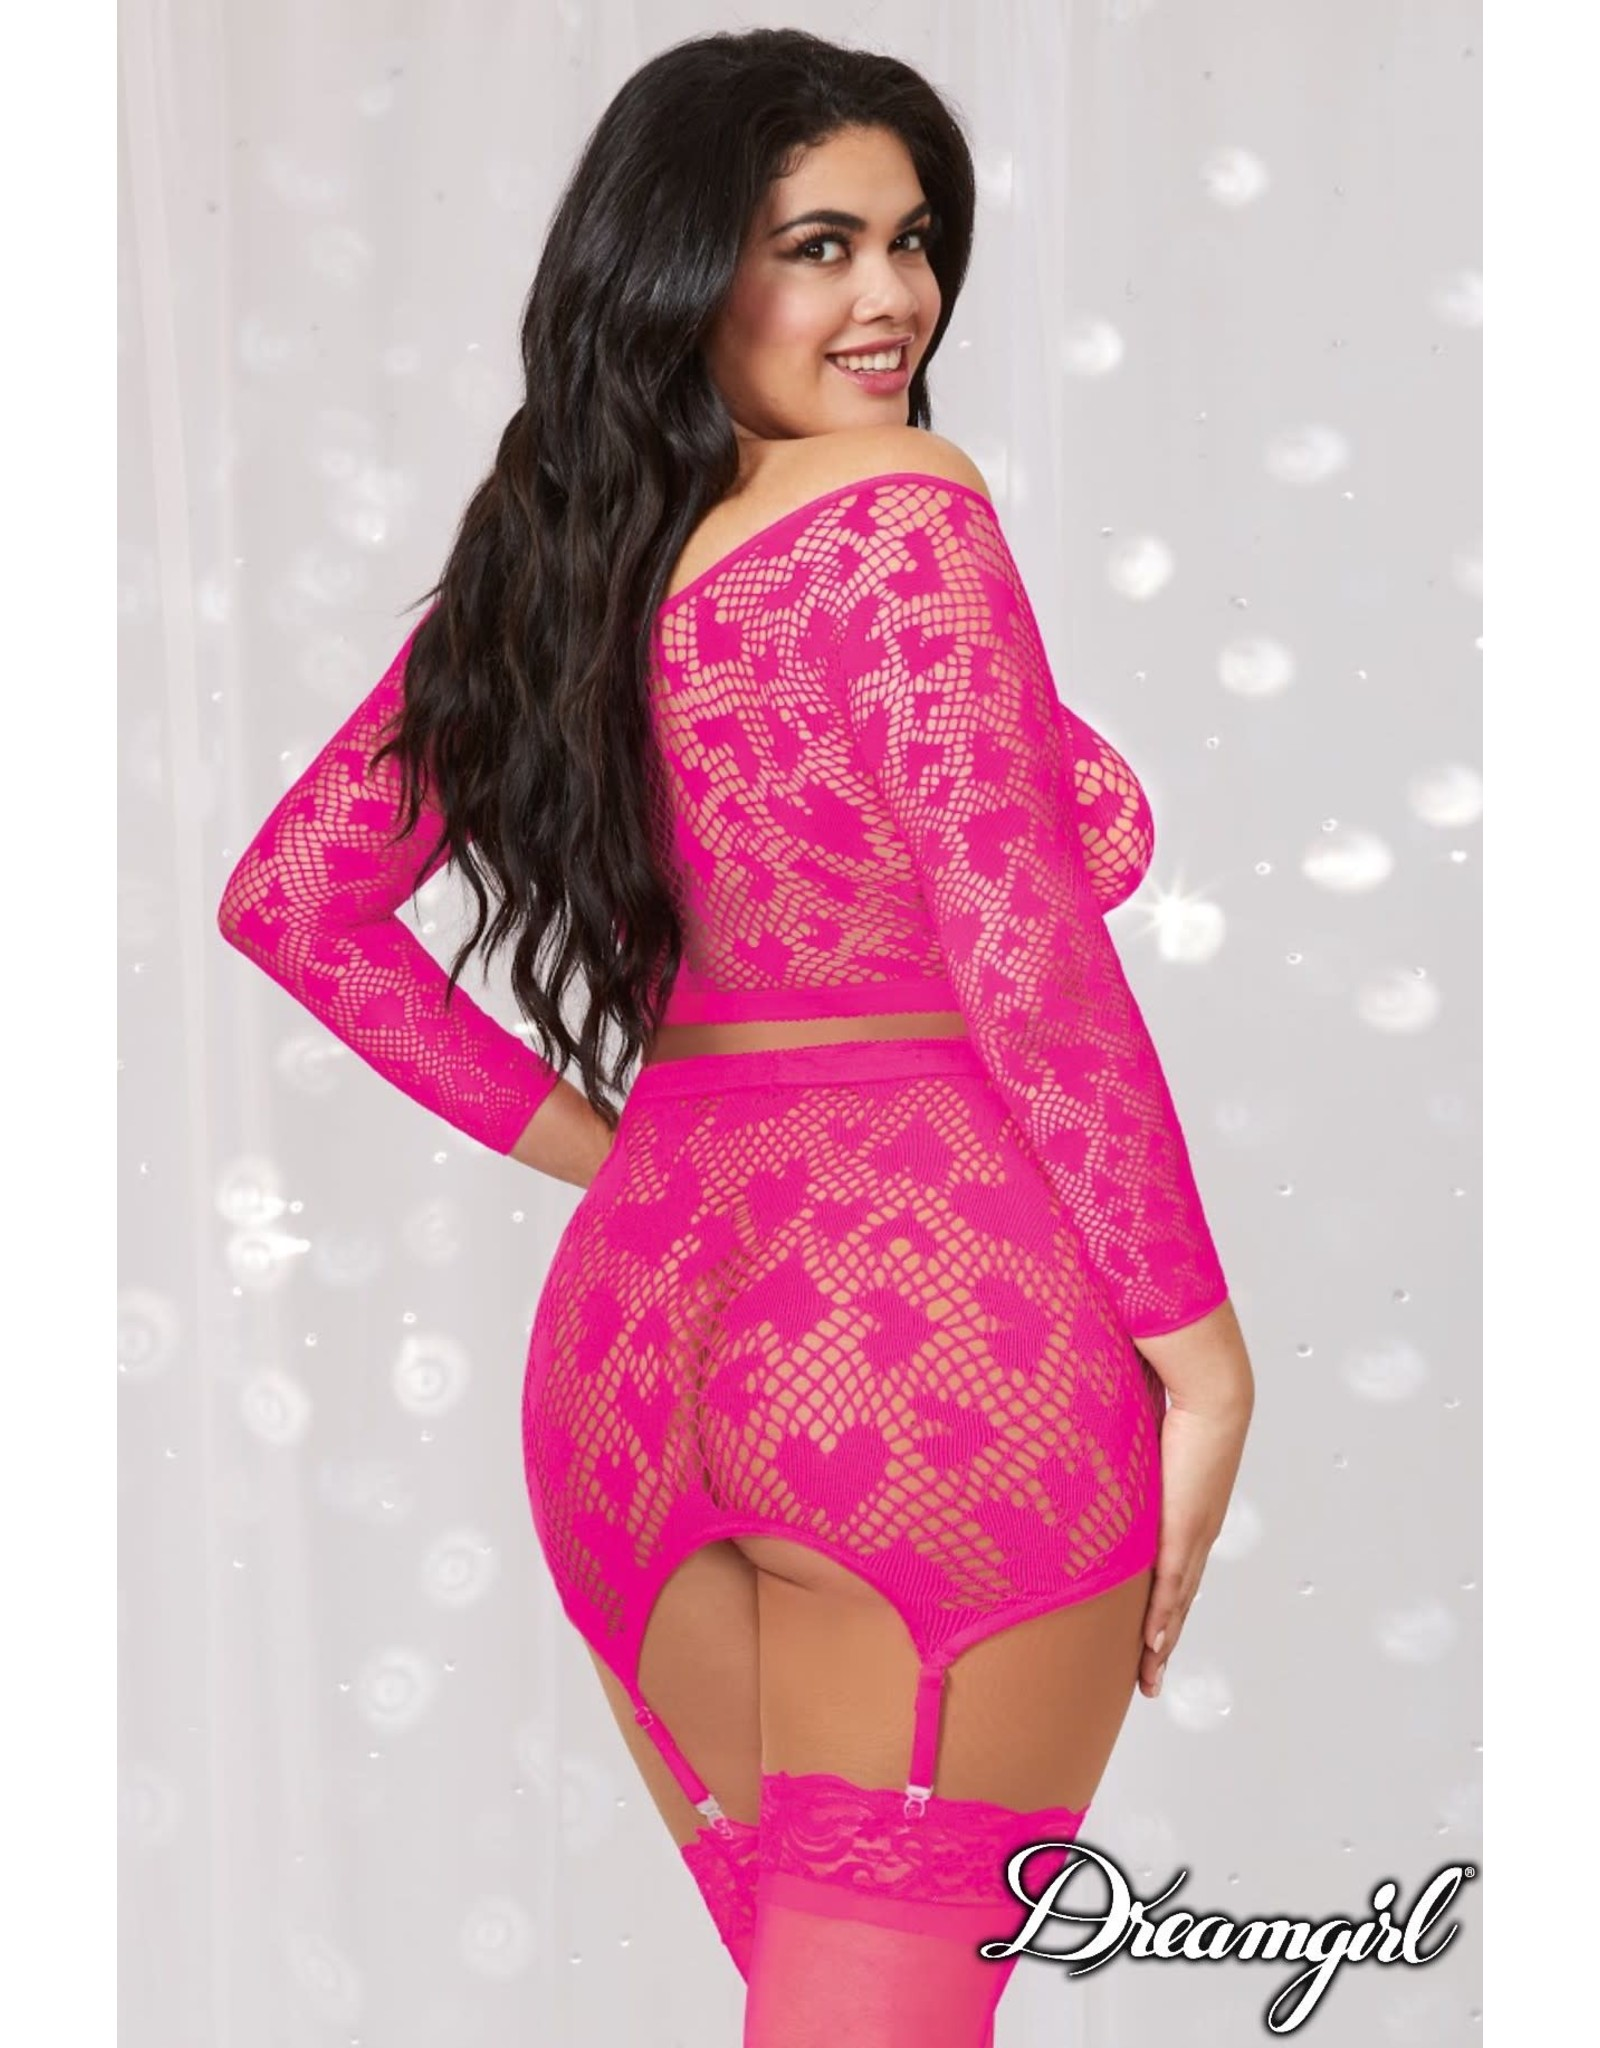 DREAMGIRL - 2PC SET - HOT PINK - ONE SIZE QUEEN